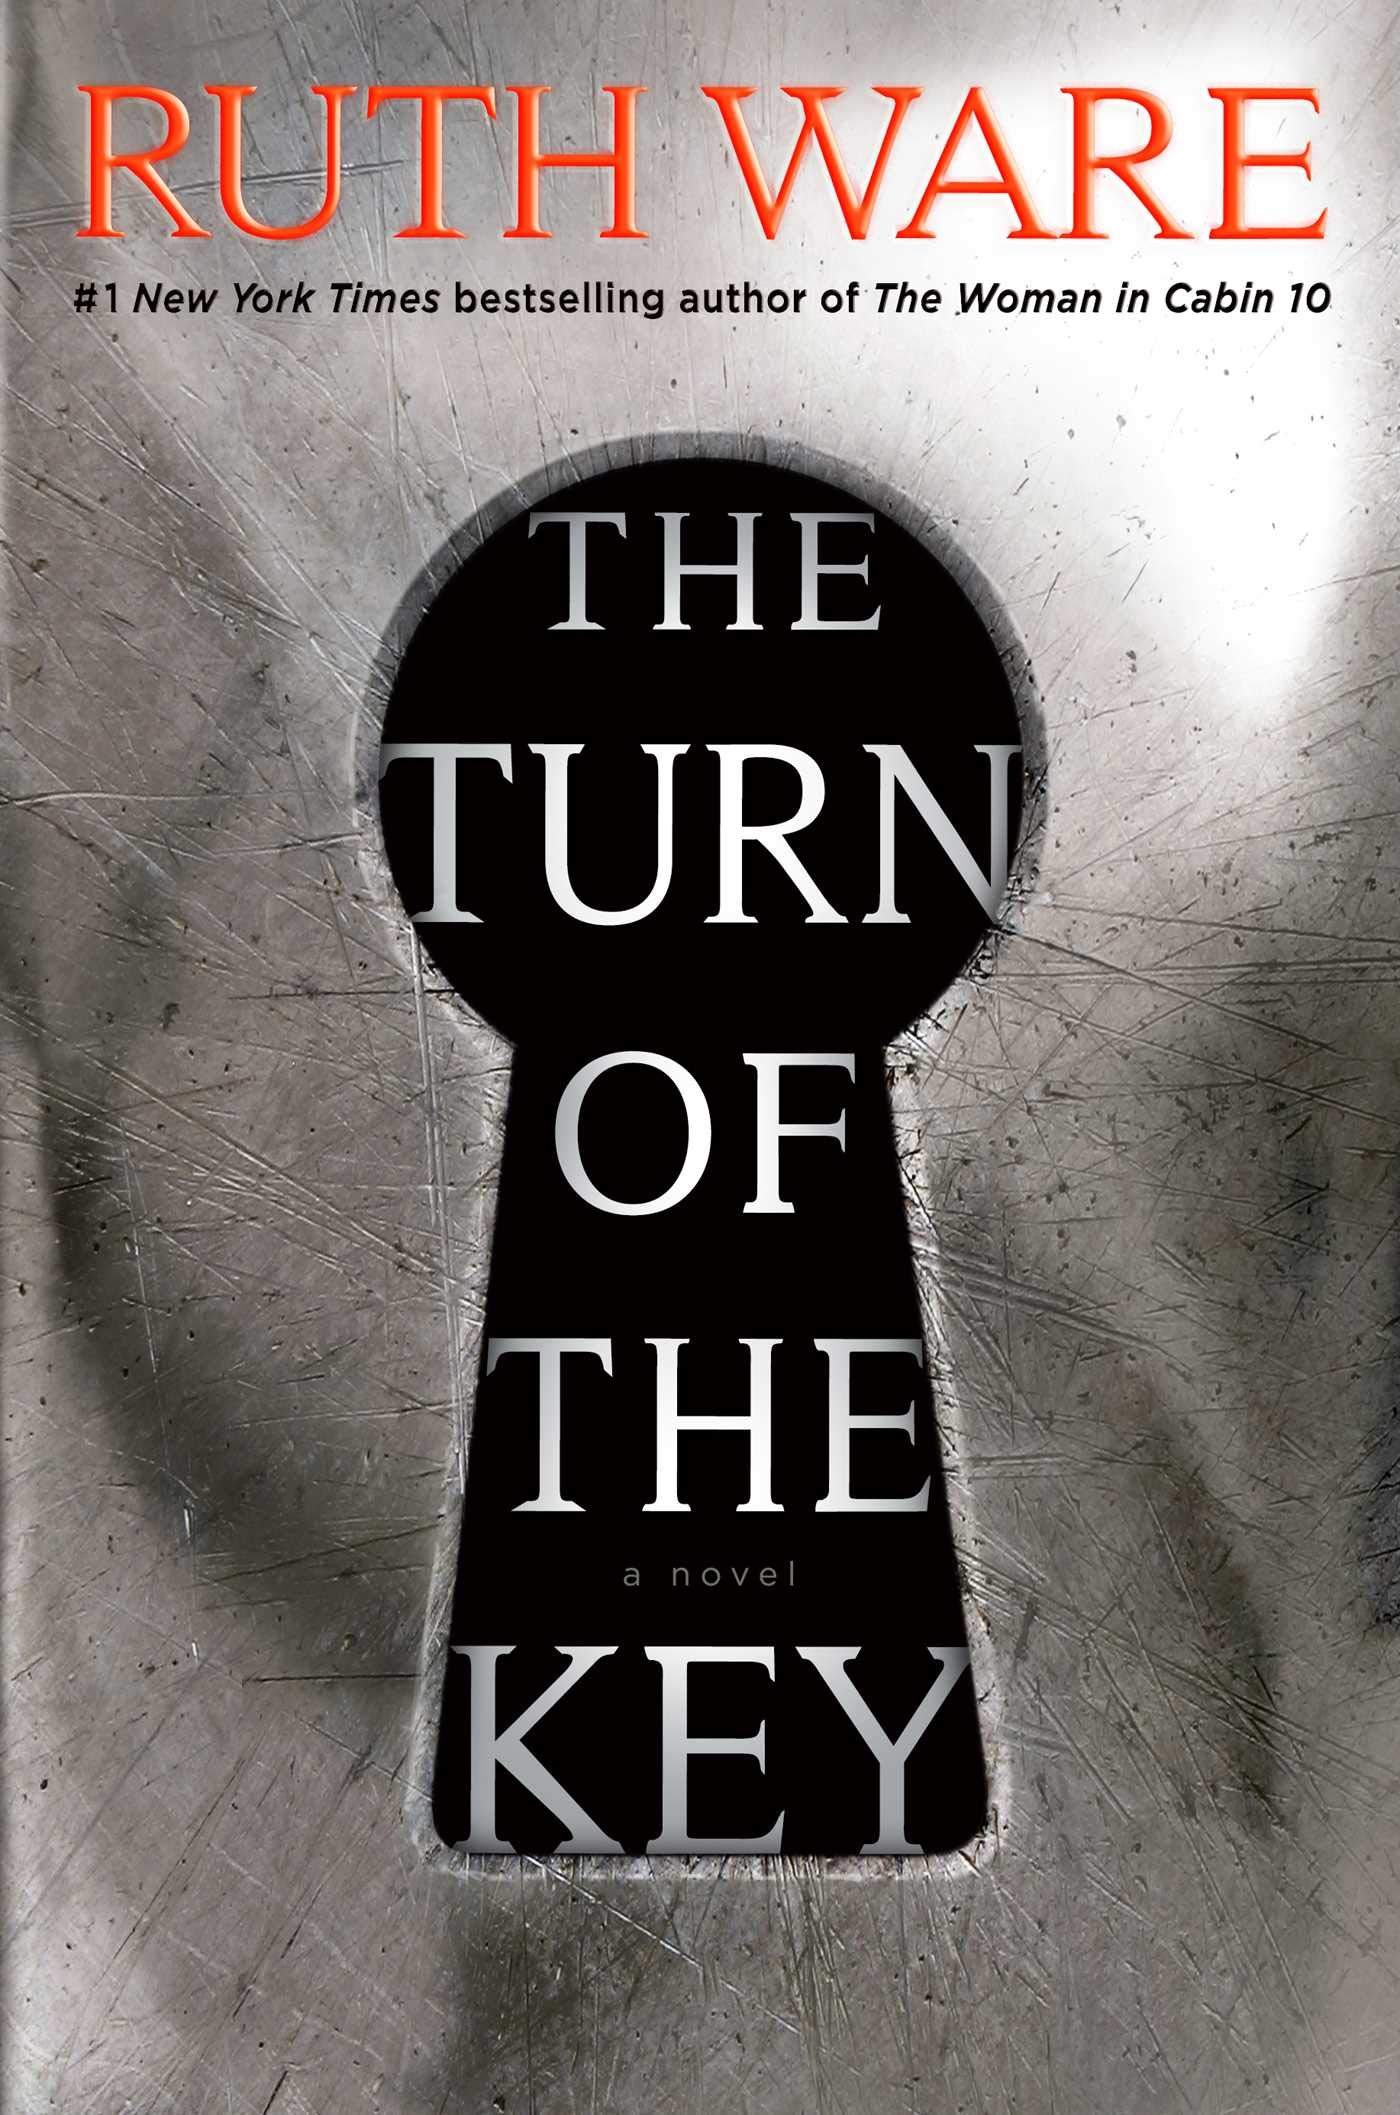 Black and white book cover with image of a keyhole